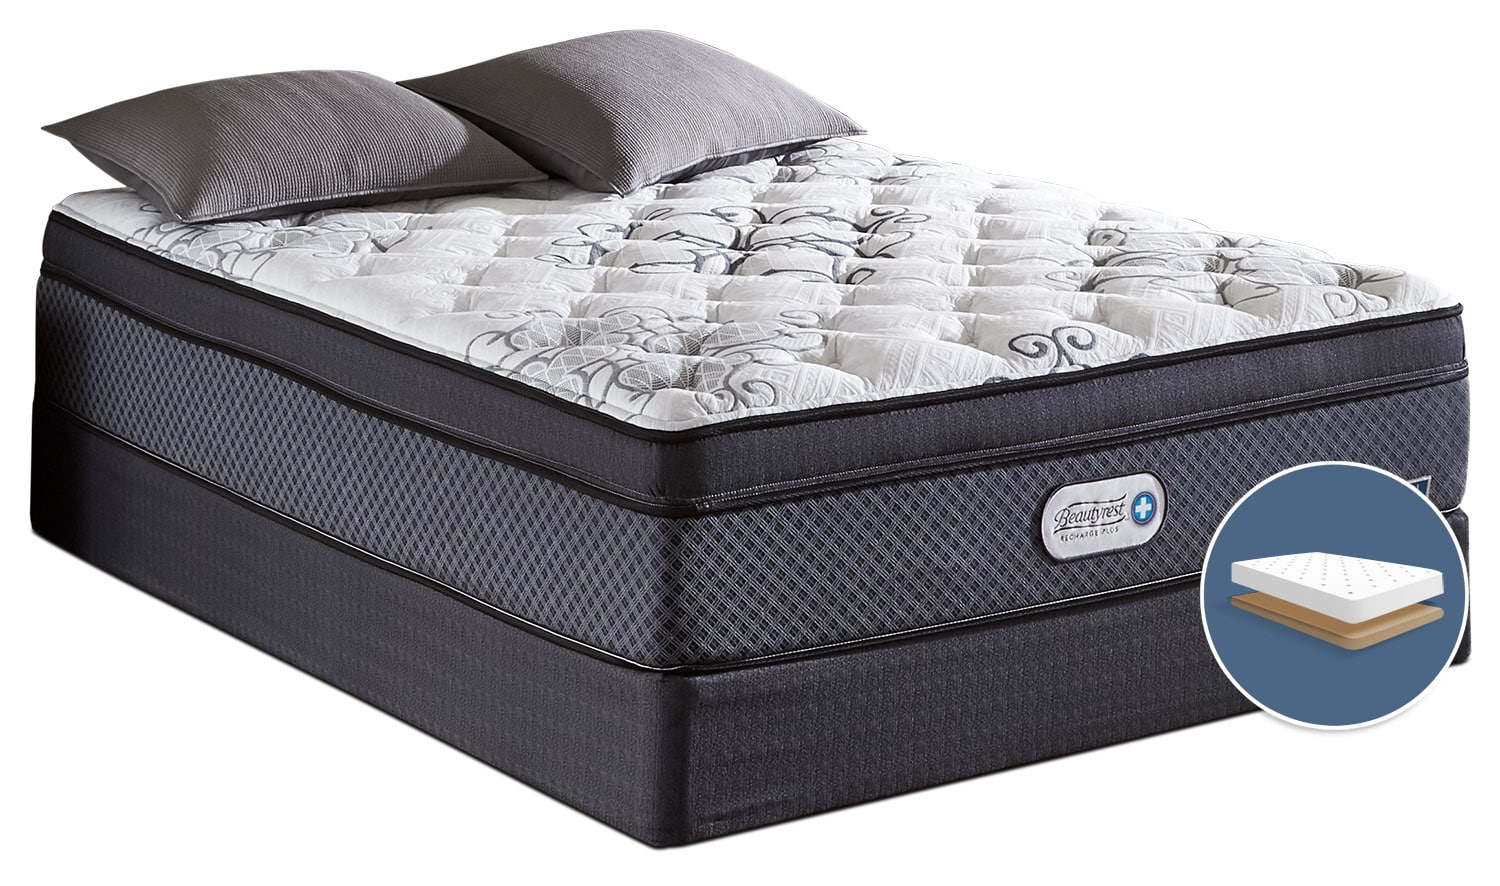 Mattresses and Bedding - Beautyrest Recharge Covington Euro-Top Luxury Firm Low-Profile Full Mattress Set